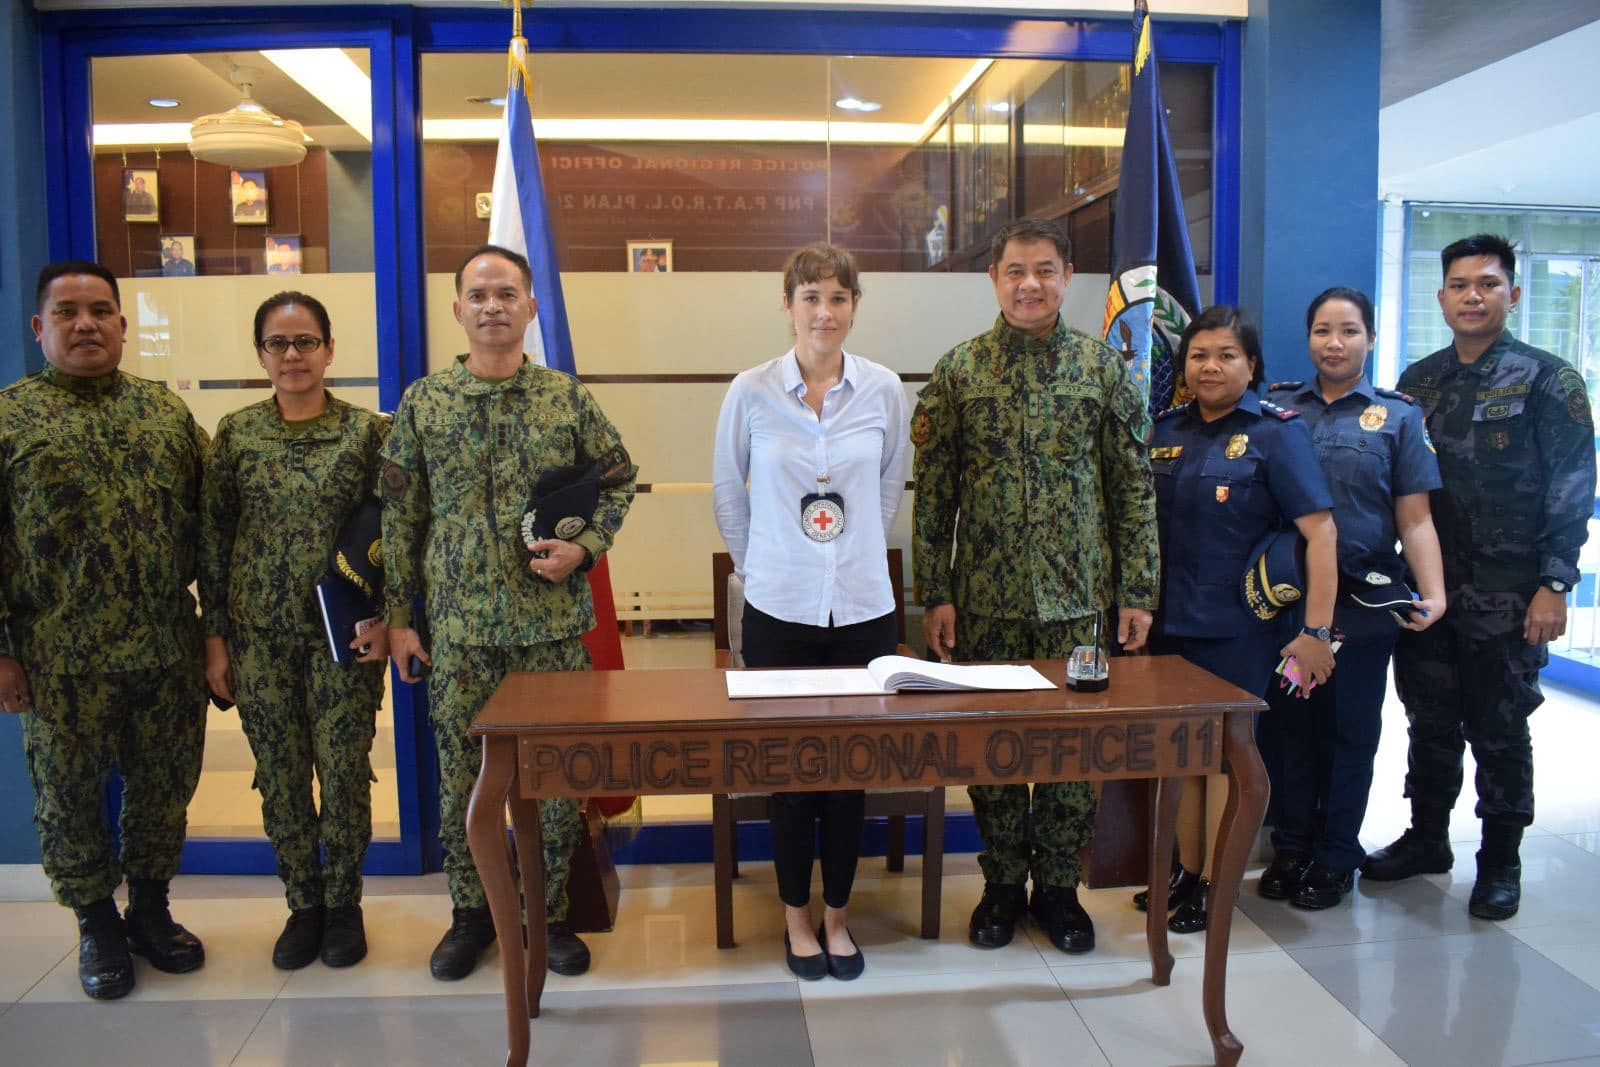 RD PRO 11, PBGen Marcelo C Morales together with the regional staff officers welcomed ICRC- Head of Sub-Delegation (Davao) Ms. Tara Montgomery during her visit at PRO 11